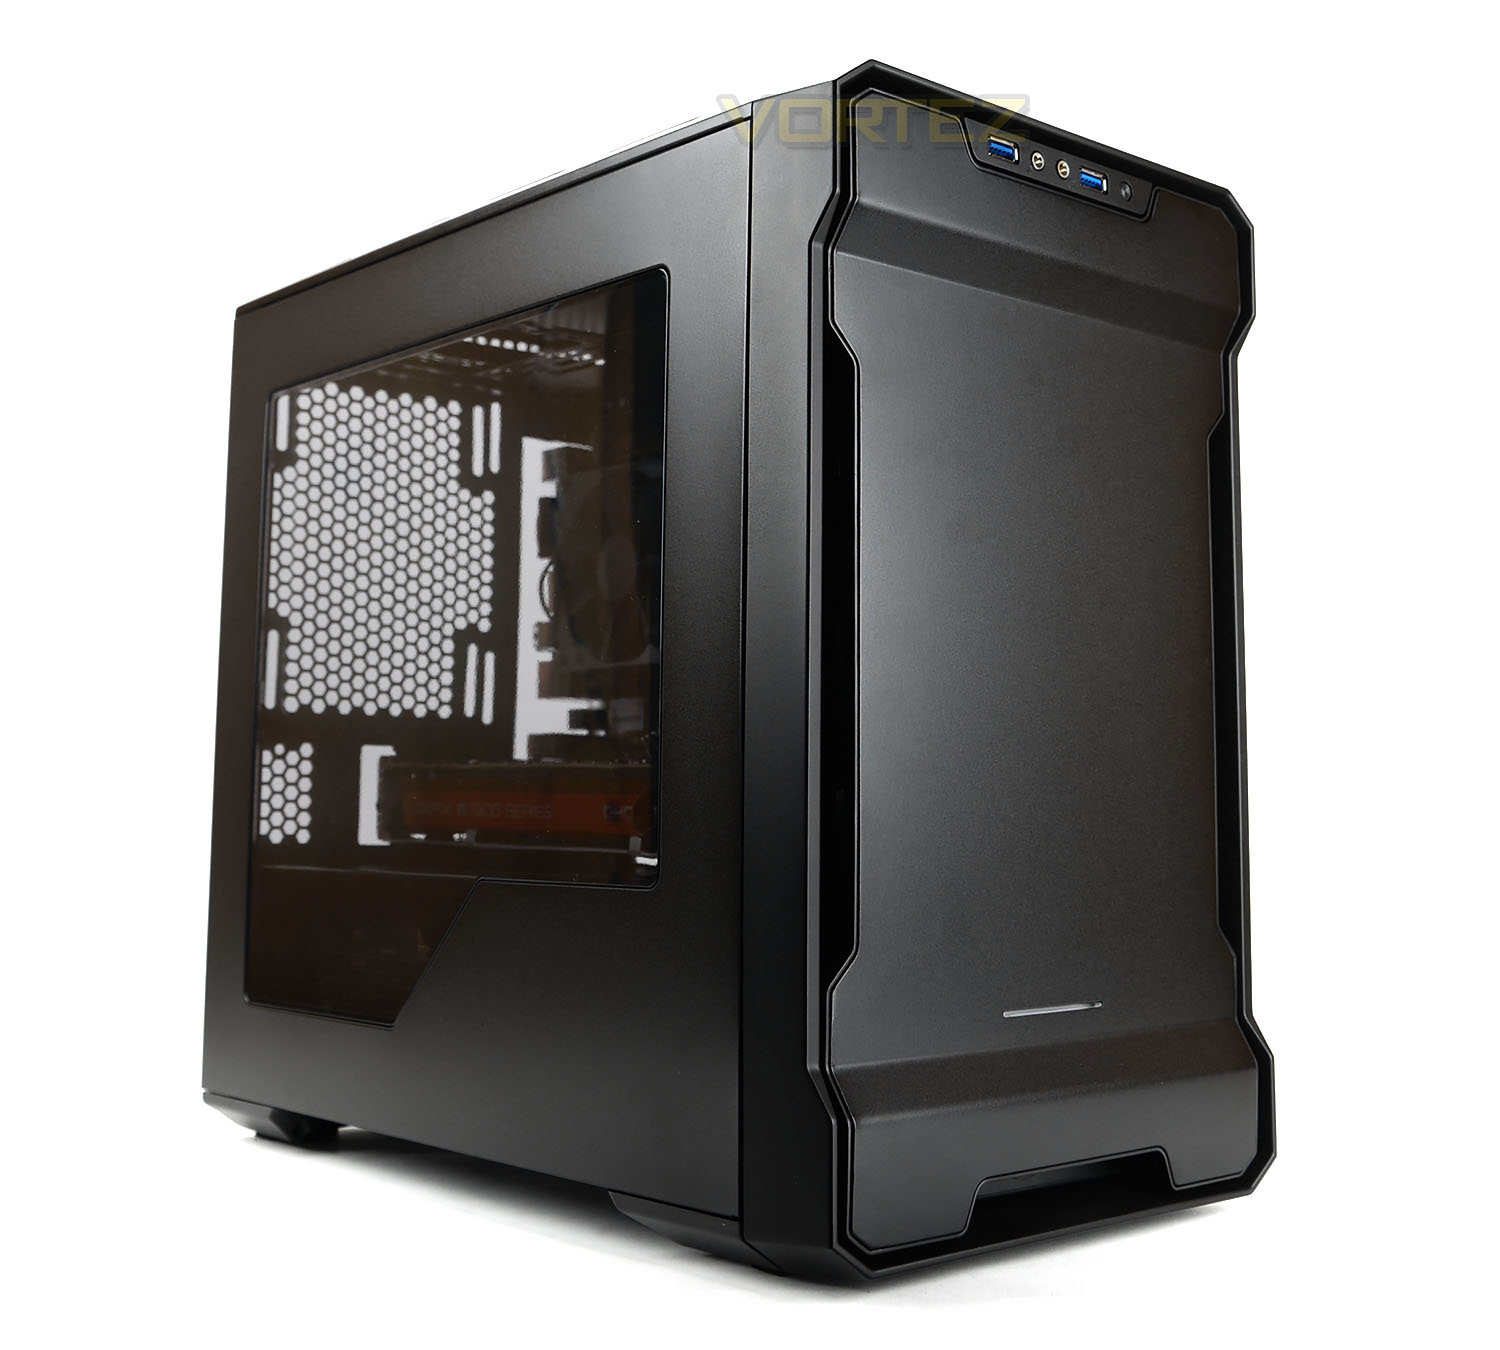 http://www.vortez.net/articles_file/30088_phanteks%20enthoo%20evolv%20itx%20review%20-%20intro.jpg